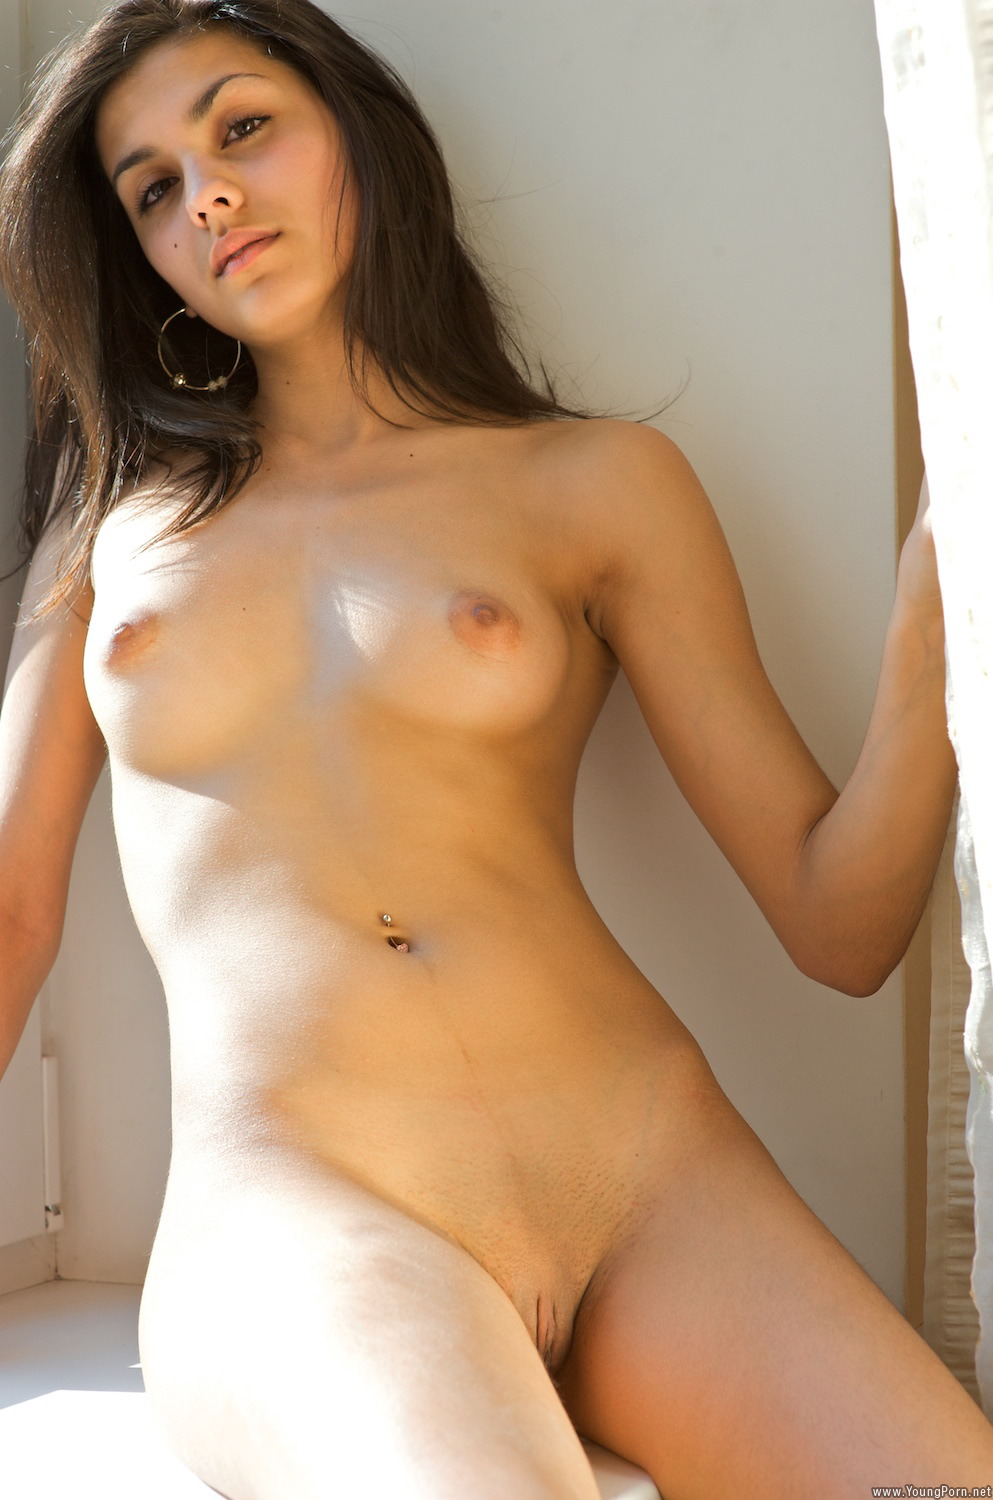 My Xzone Nude Indian Girls -2-7301